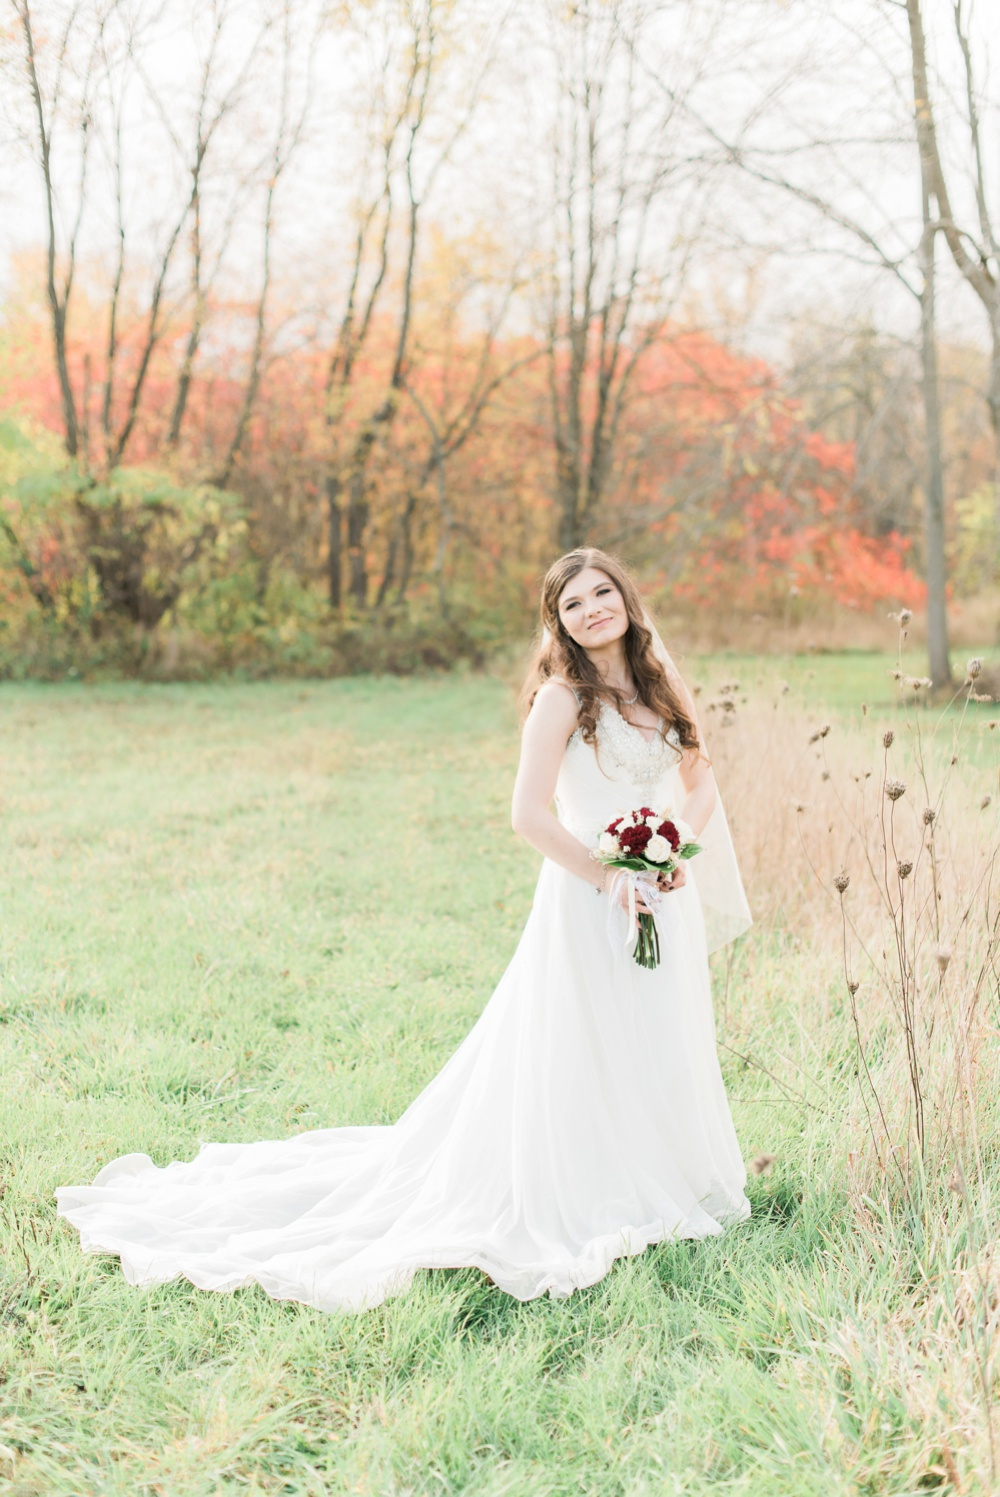 ricciardis-tree-farm-wedding-wadsworth-ohio-lauren-ryan_0099.jpg